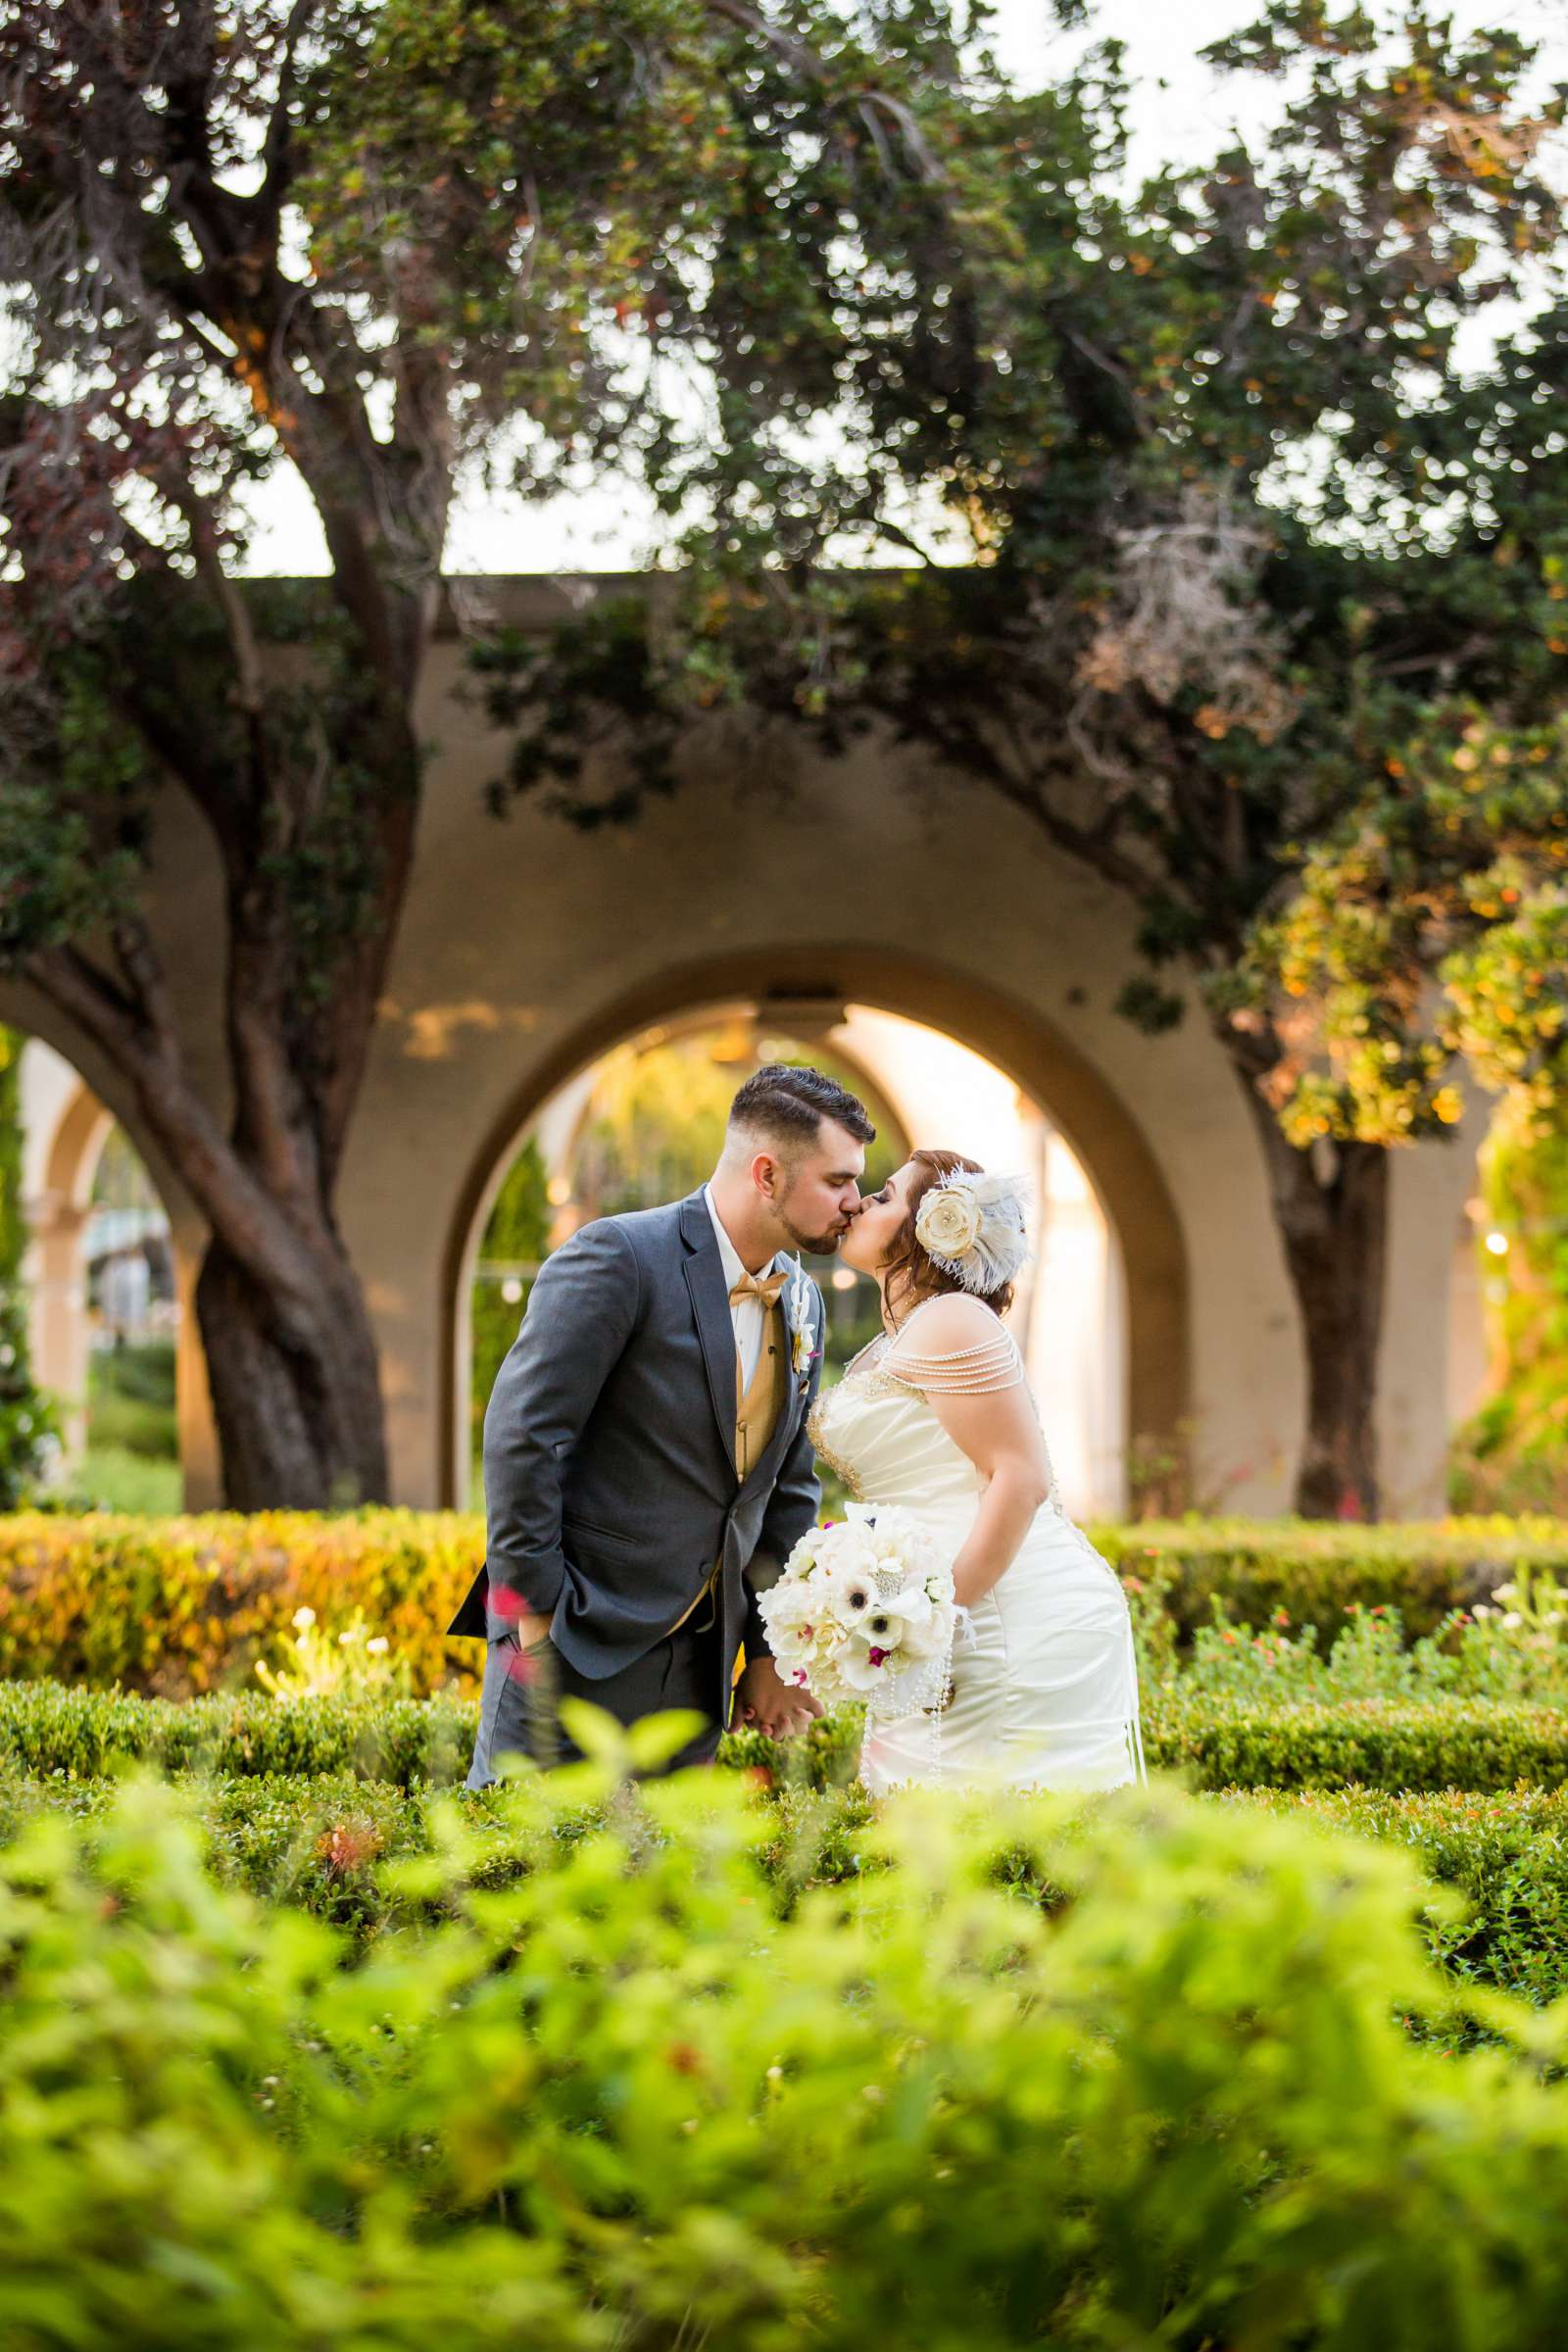 The Prado Wedding coordinated by Breezy Day Weddings, Aalis and Michael Wedding Photo #17 by True Photography